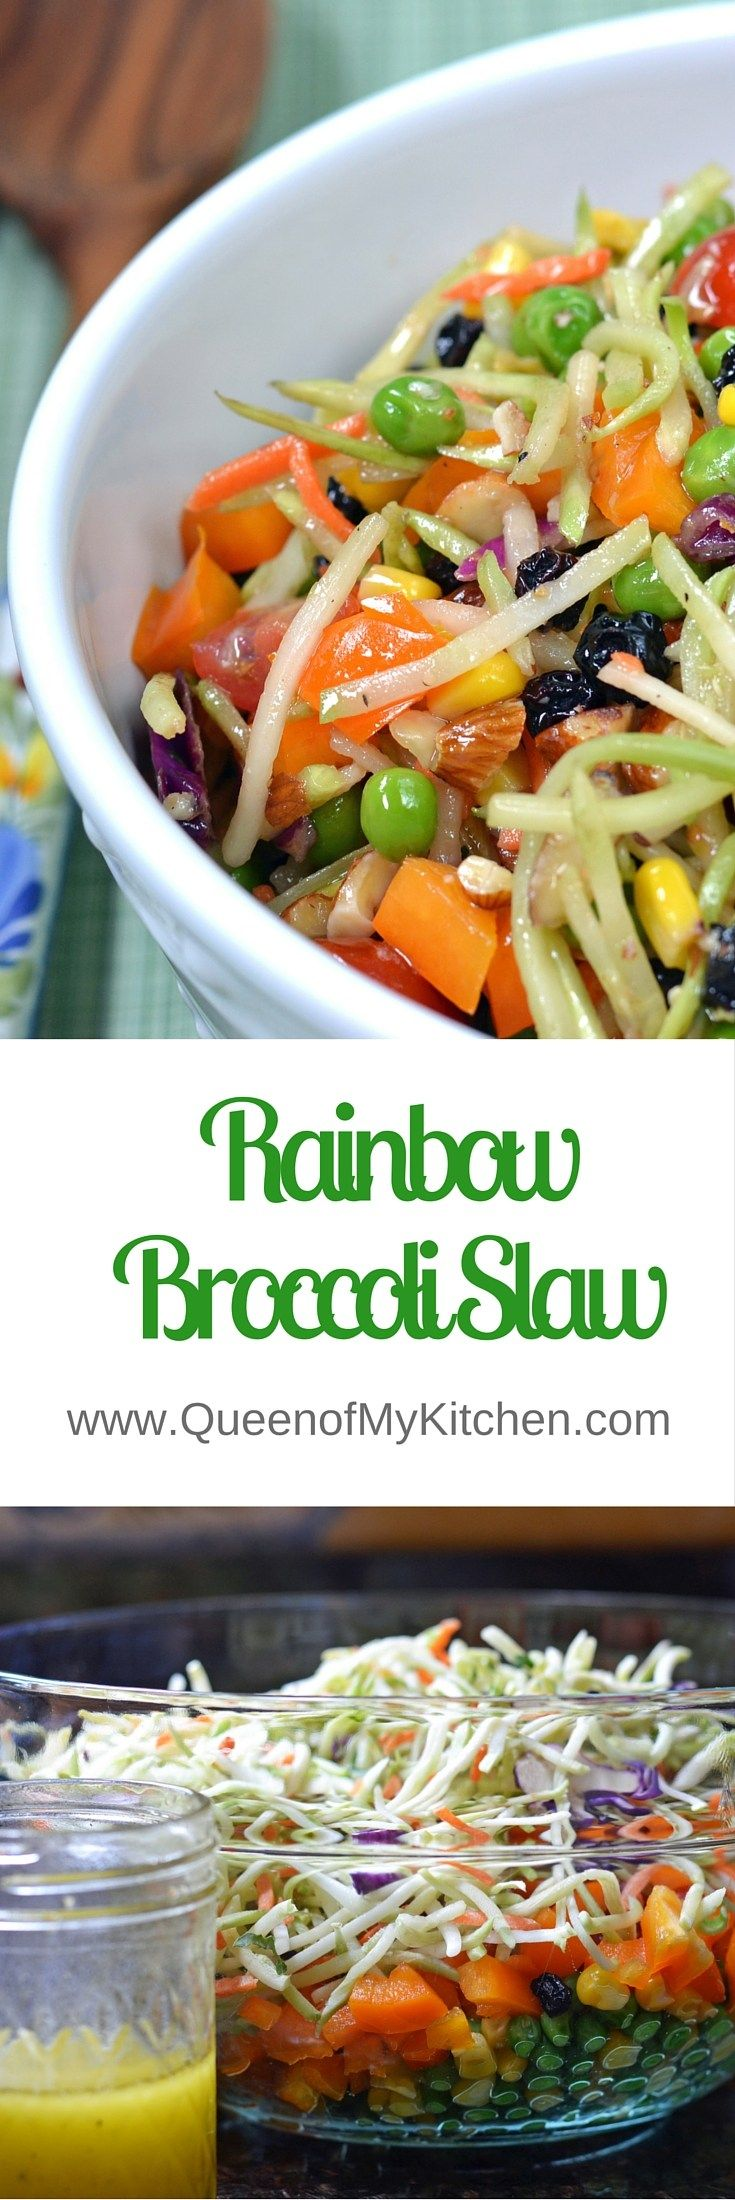 ... Slaw Salad on Pinterest | Asian Broccoli Slaw, Salad and Main Courses